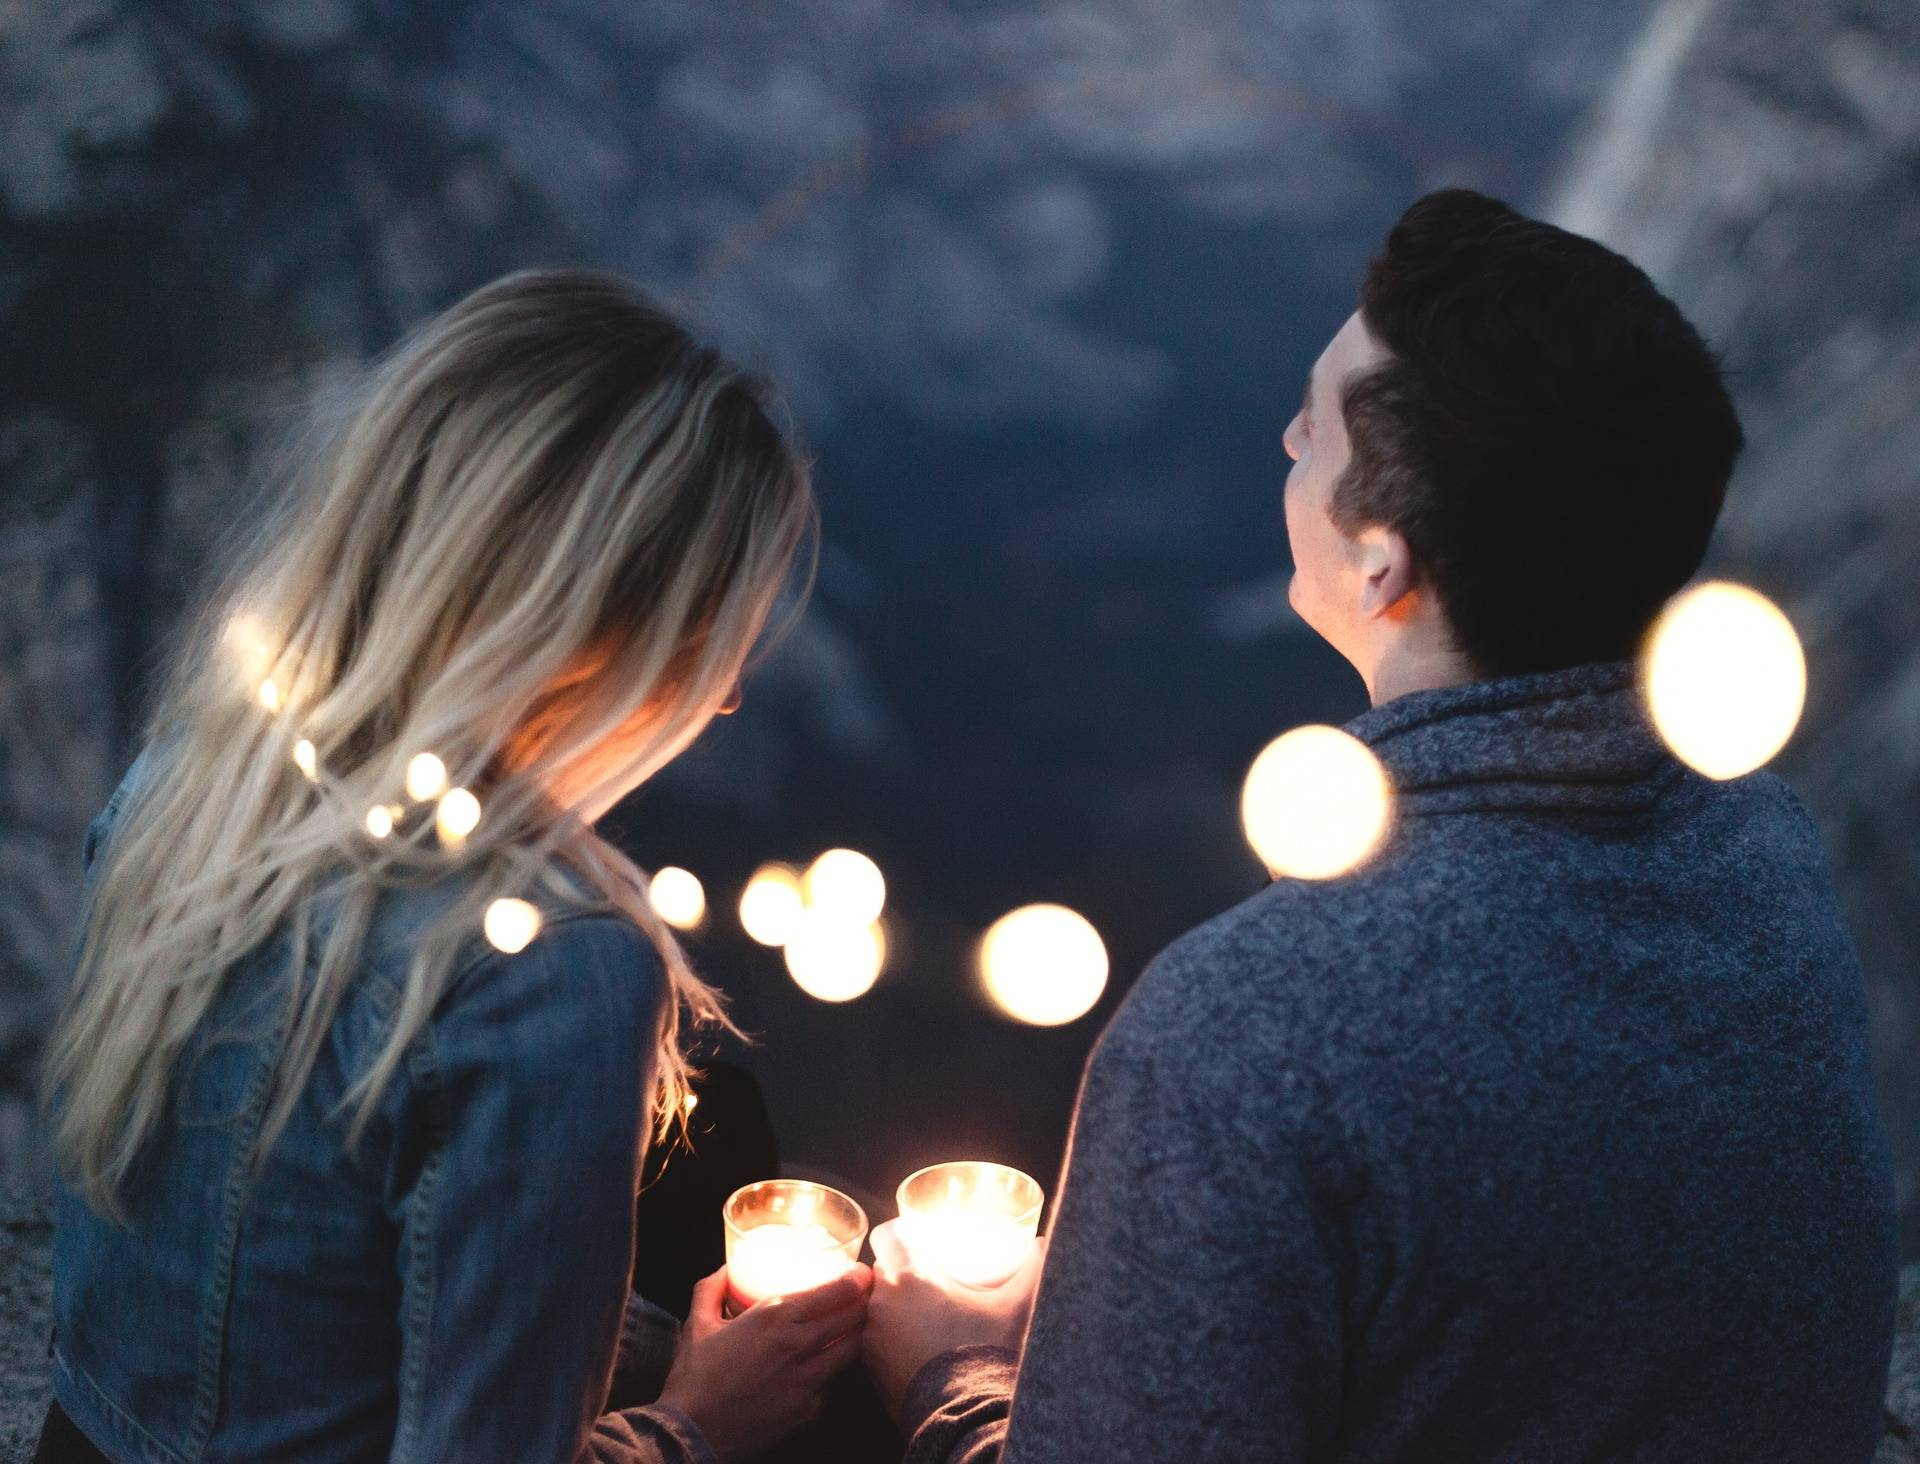 Second Date: How to Behave after Successful First Date